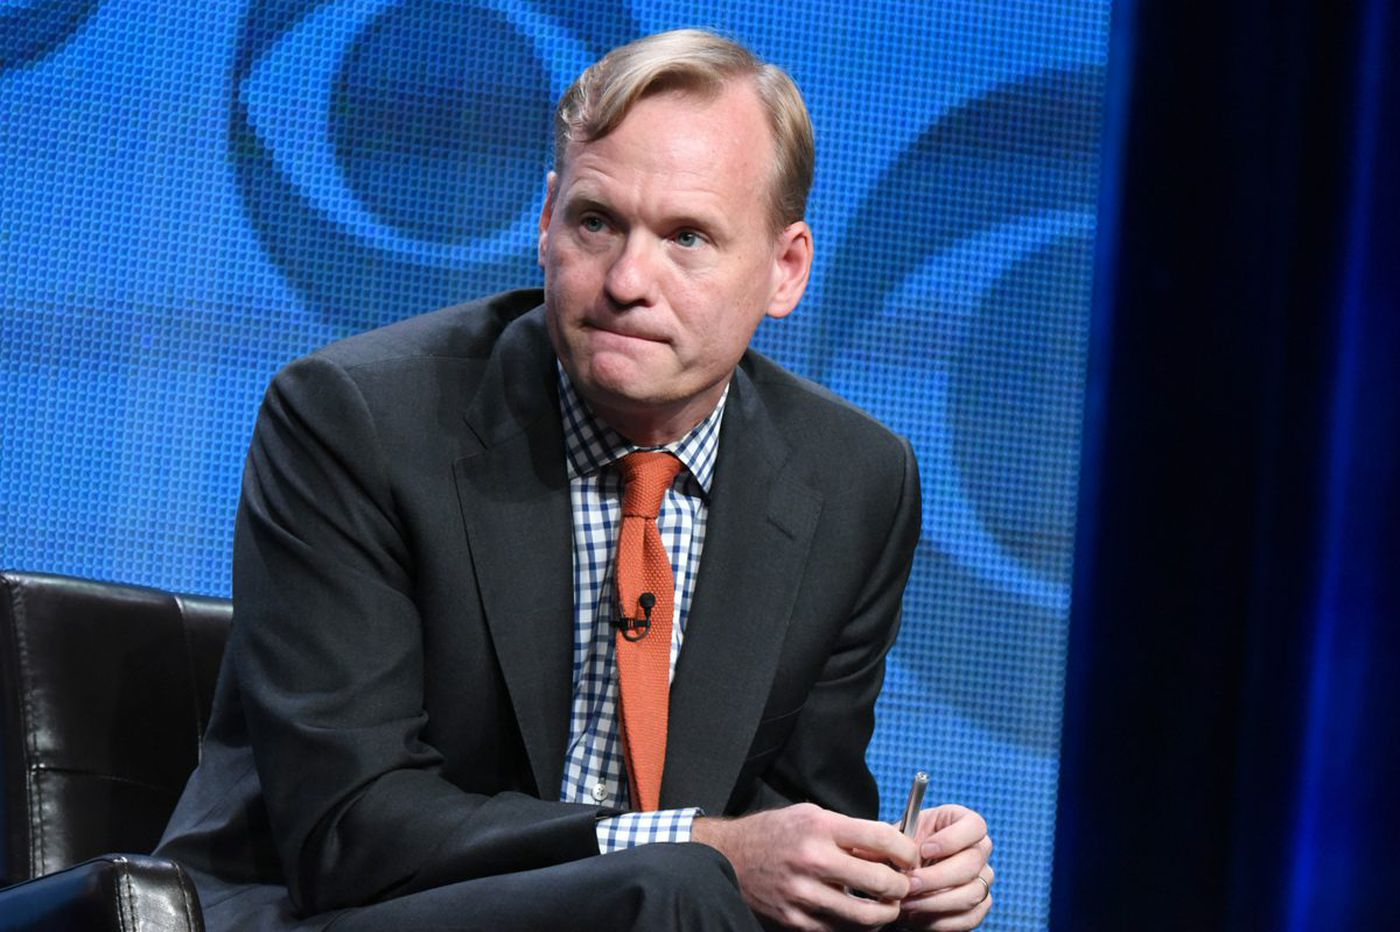 John Dickerson to replace Charlie Rose on 'CBS This Morning'